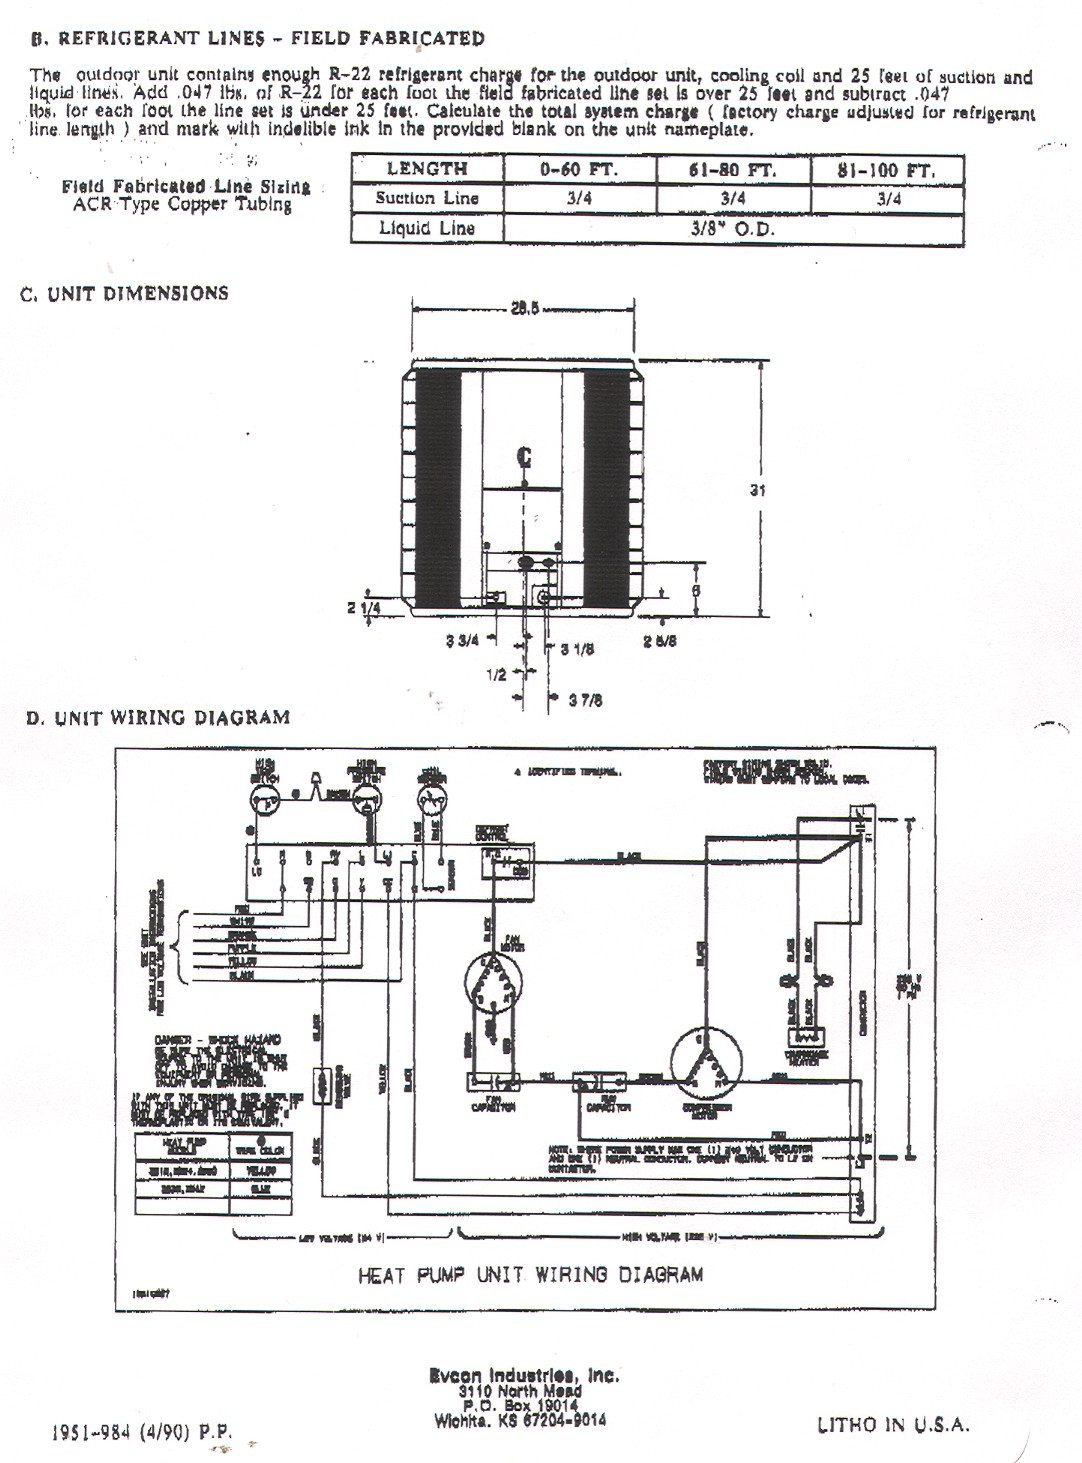 heat pump wiring diagram schematic Collection-York Heat Pump Wiring Diagram 15-q